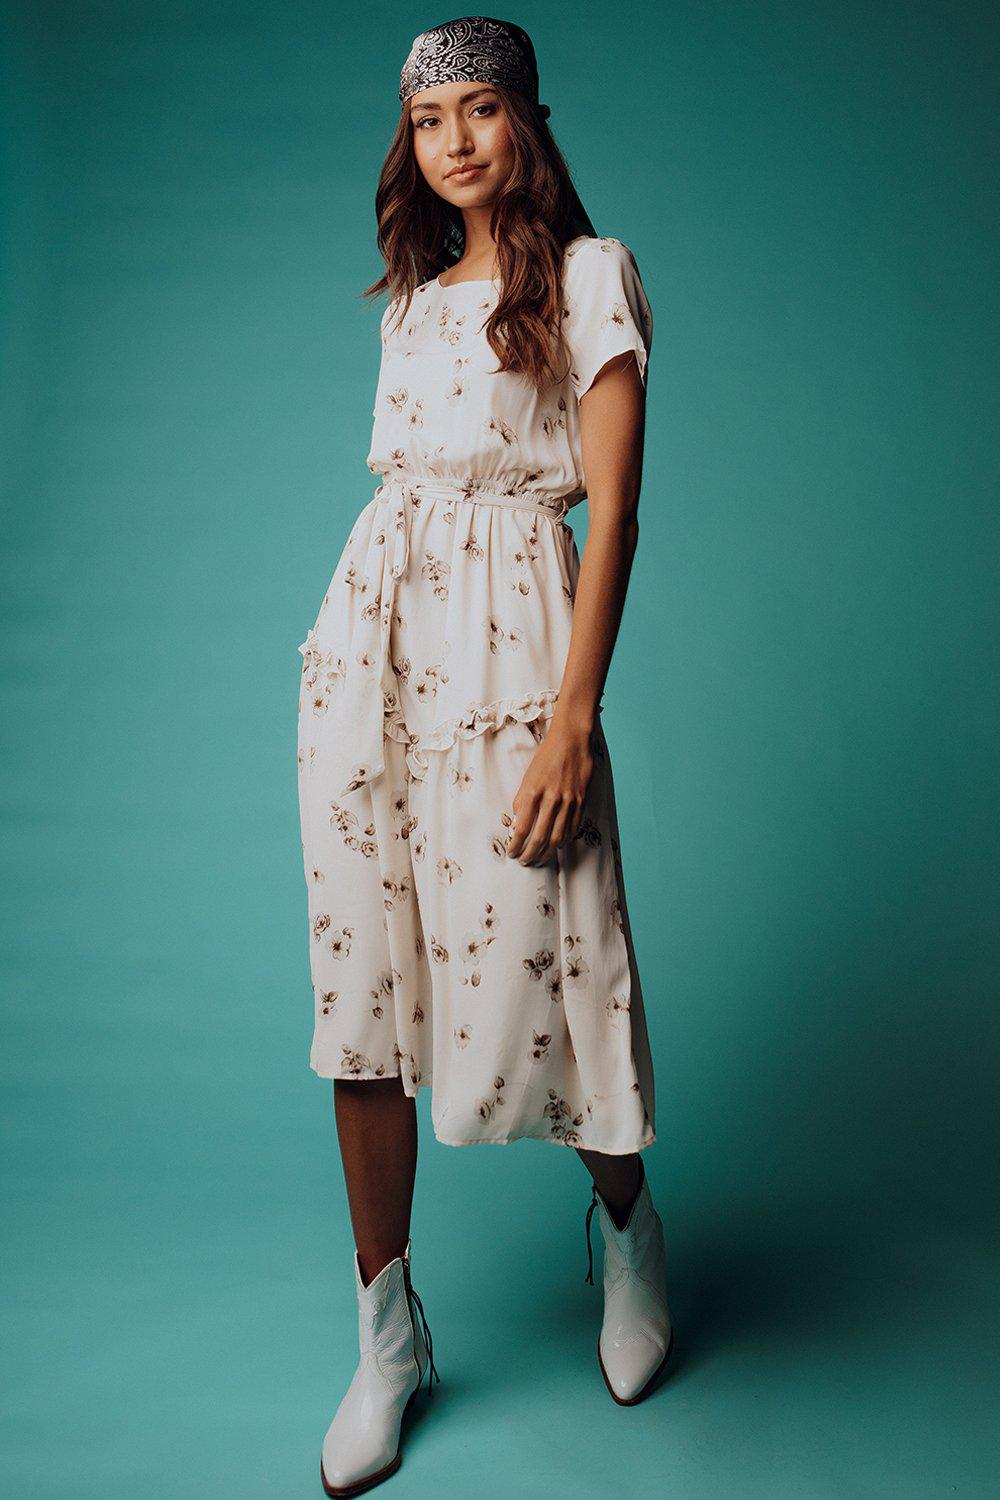 best_seller, I'm Almost There Floral Midi Dress, Dress, women's clothing, dresses, skirts, coats, jackets, shoes, boots, tops, tee shirts, jeans, free people, levi's, rollas, jumpsuits, bottoms, tops, sweaters, pullovers, pants, shorts, sweats,.